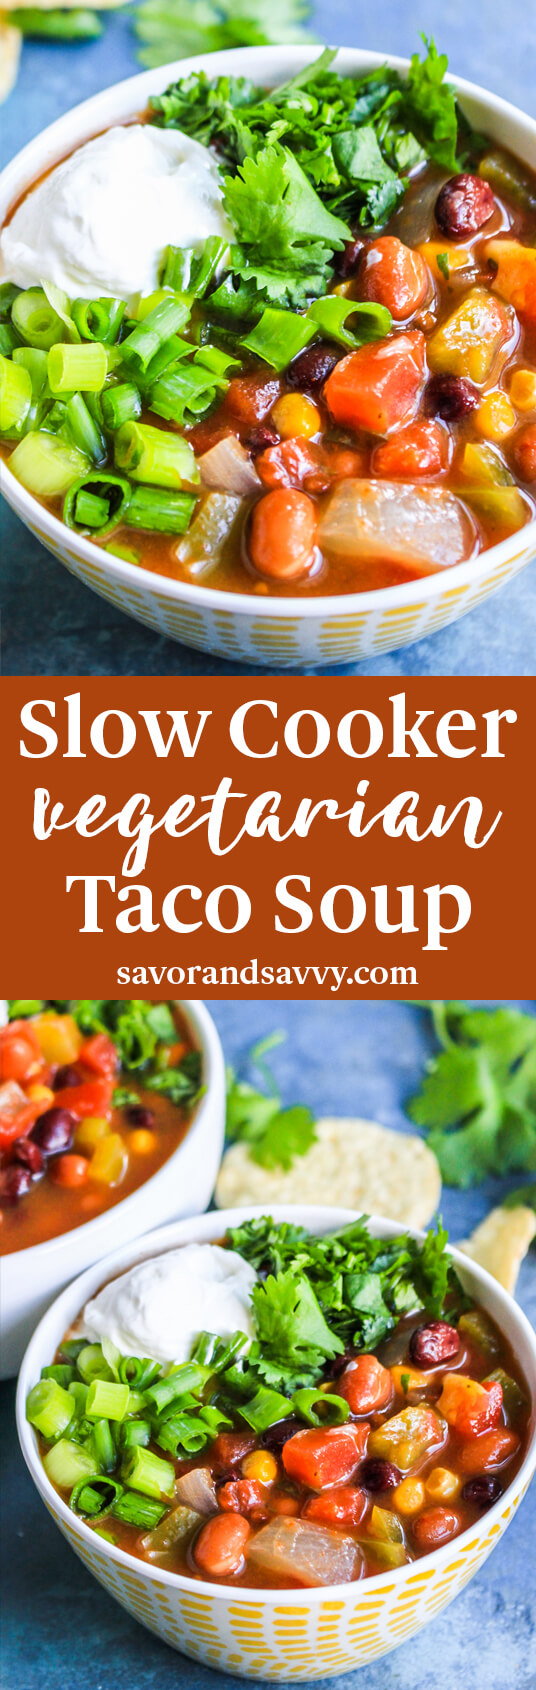 Slow Cooker Vegetarian Taco Soup {Ninja Foodi + Instant Pot Options}